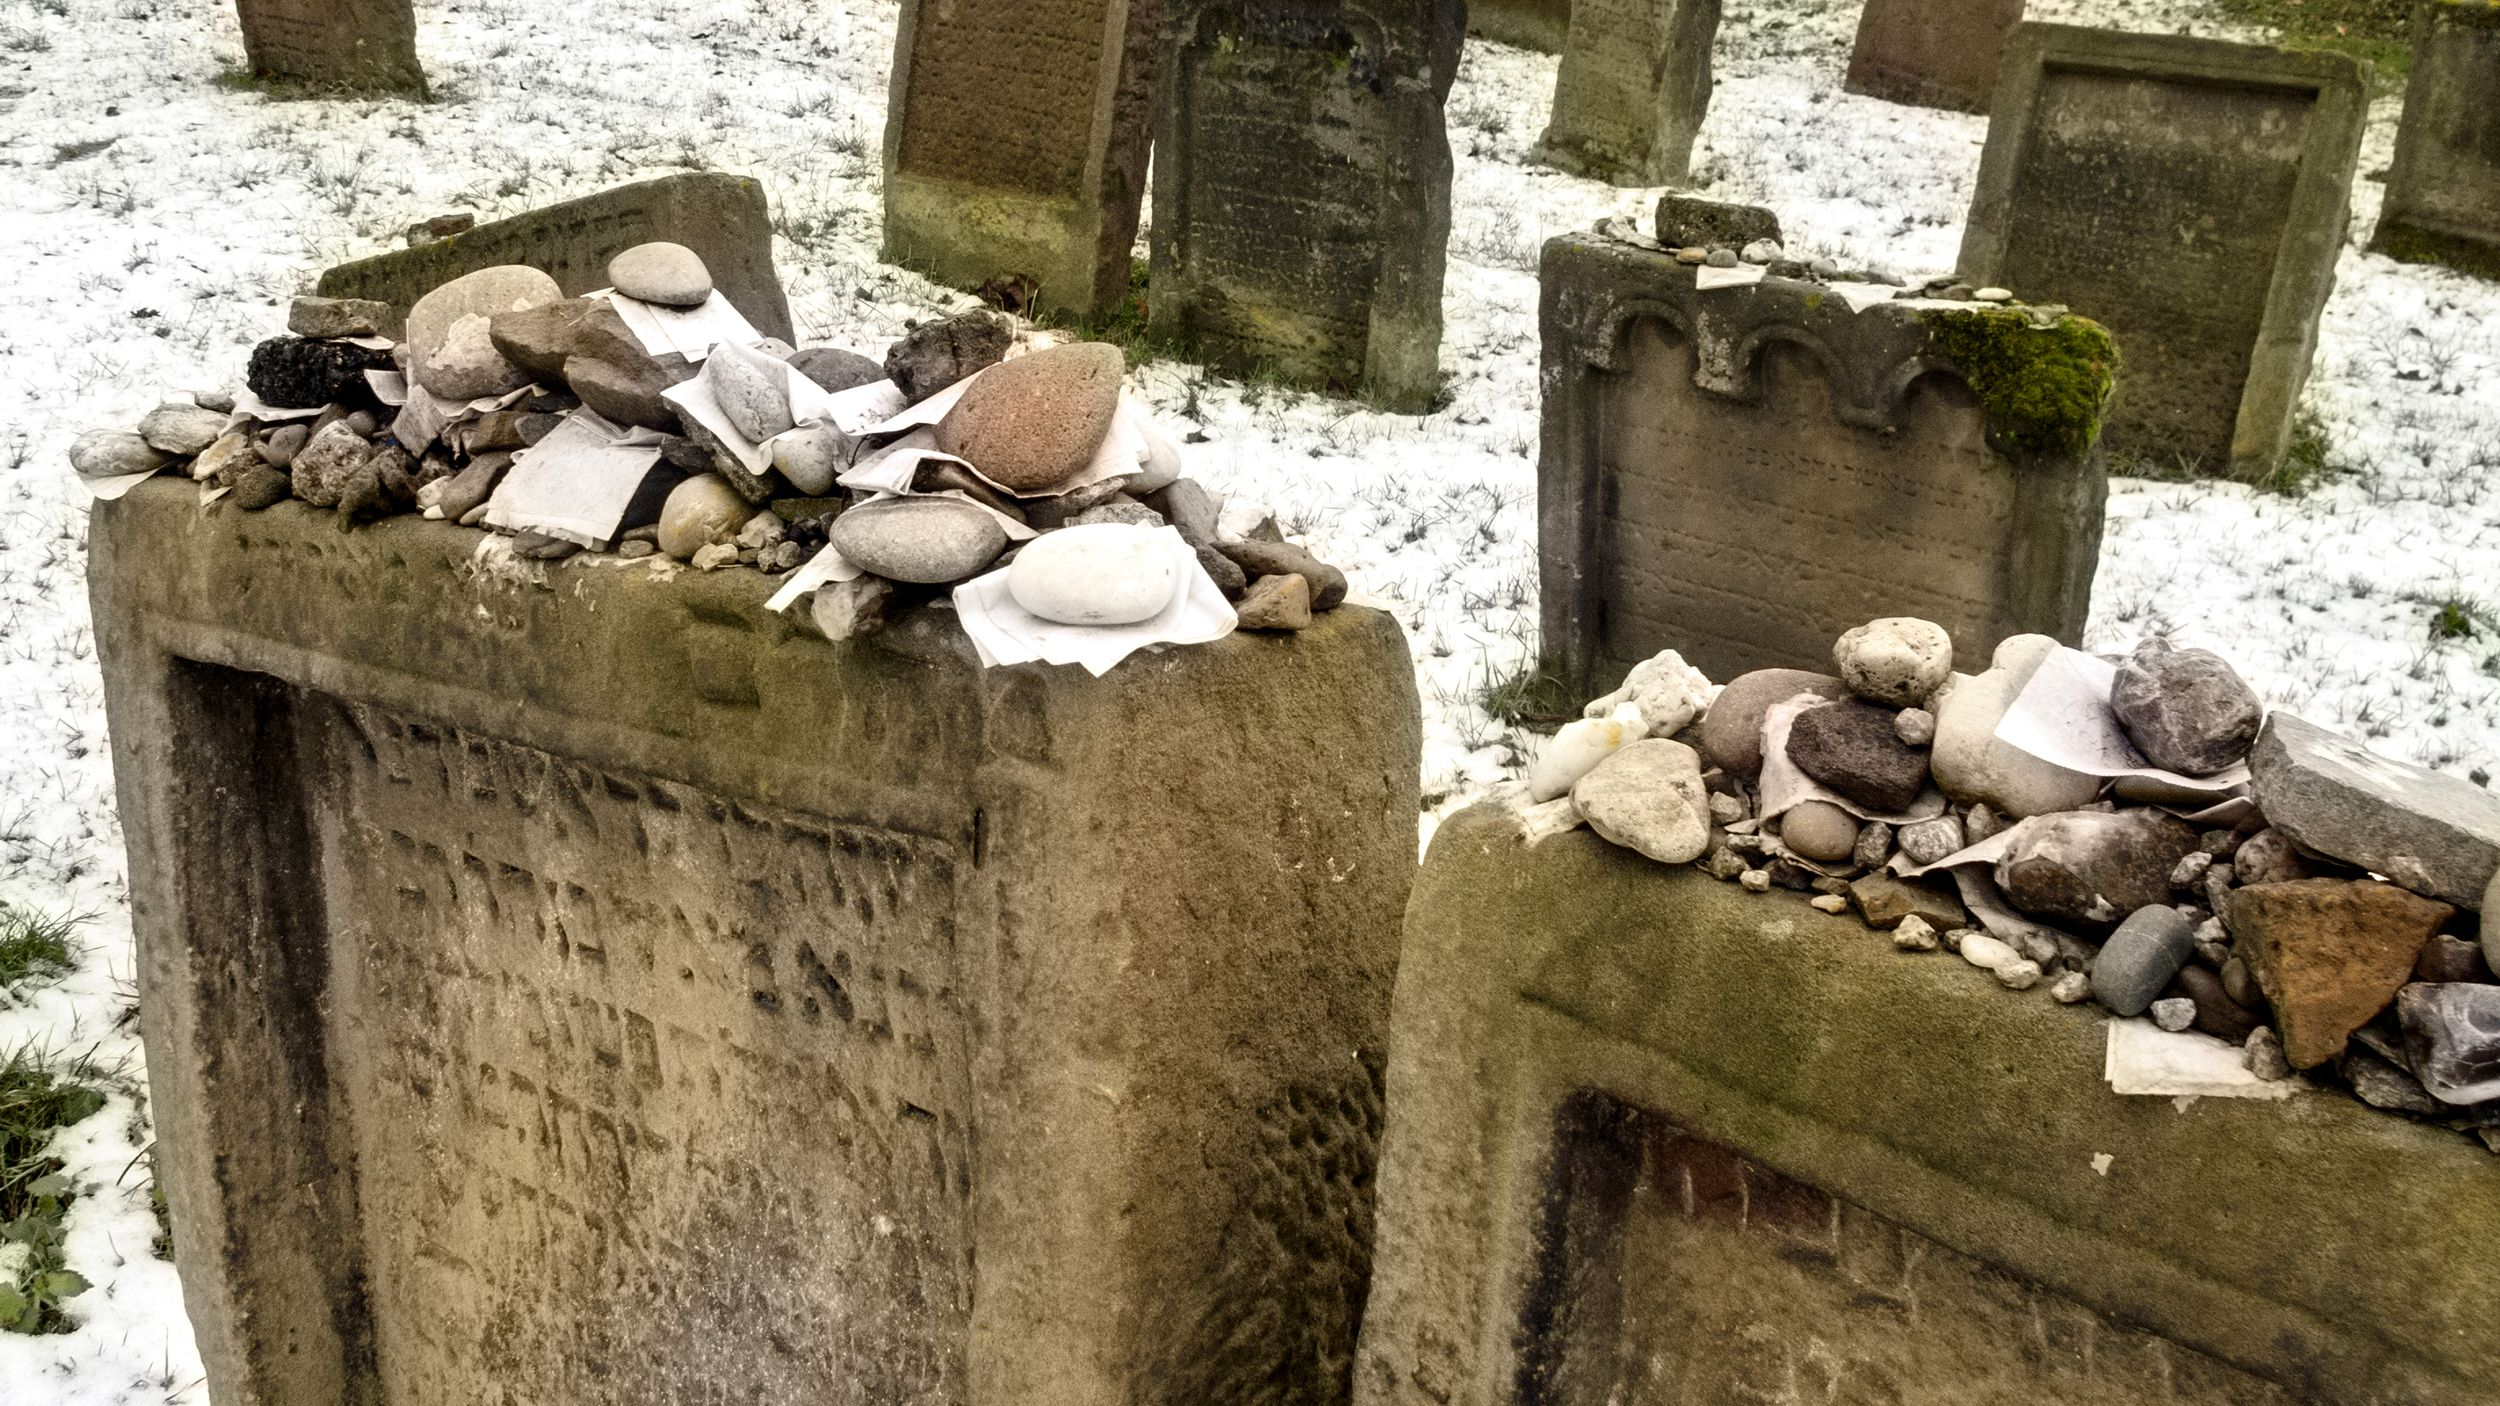 Two Gravestones with Rocks Placed Atop